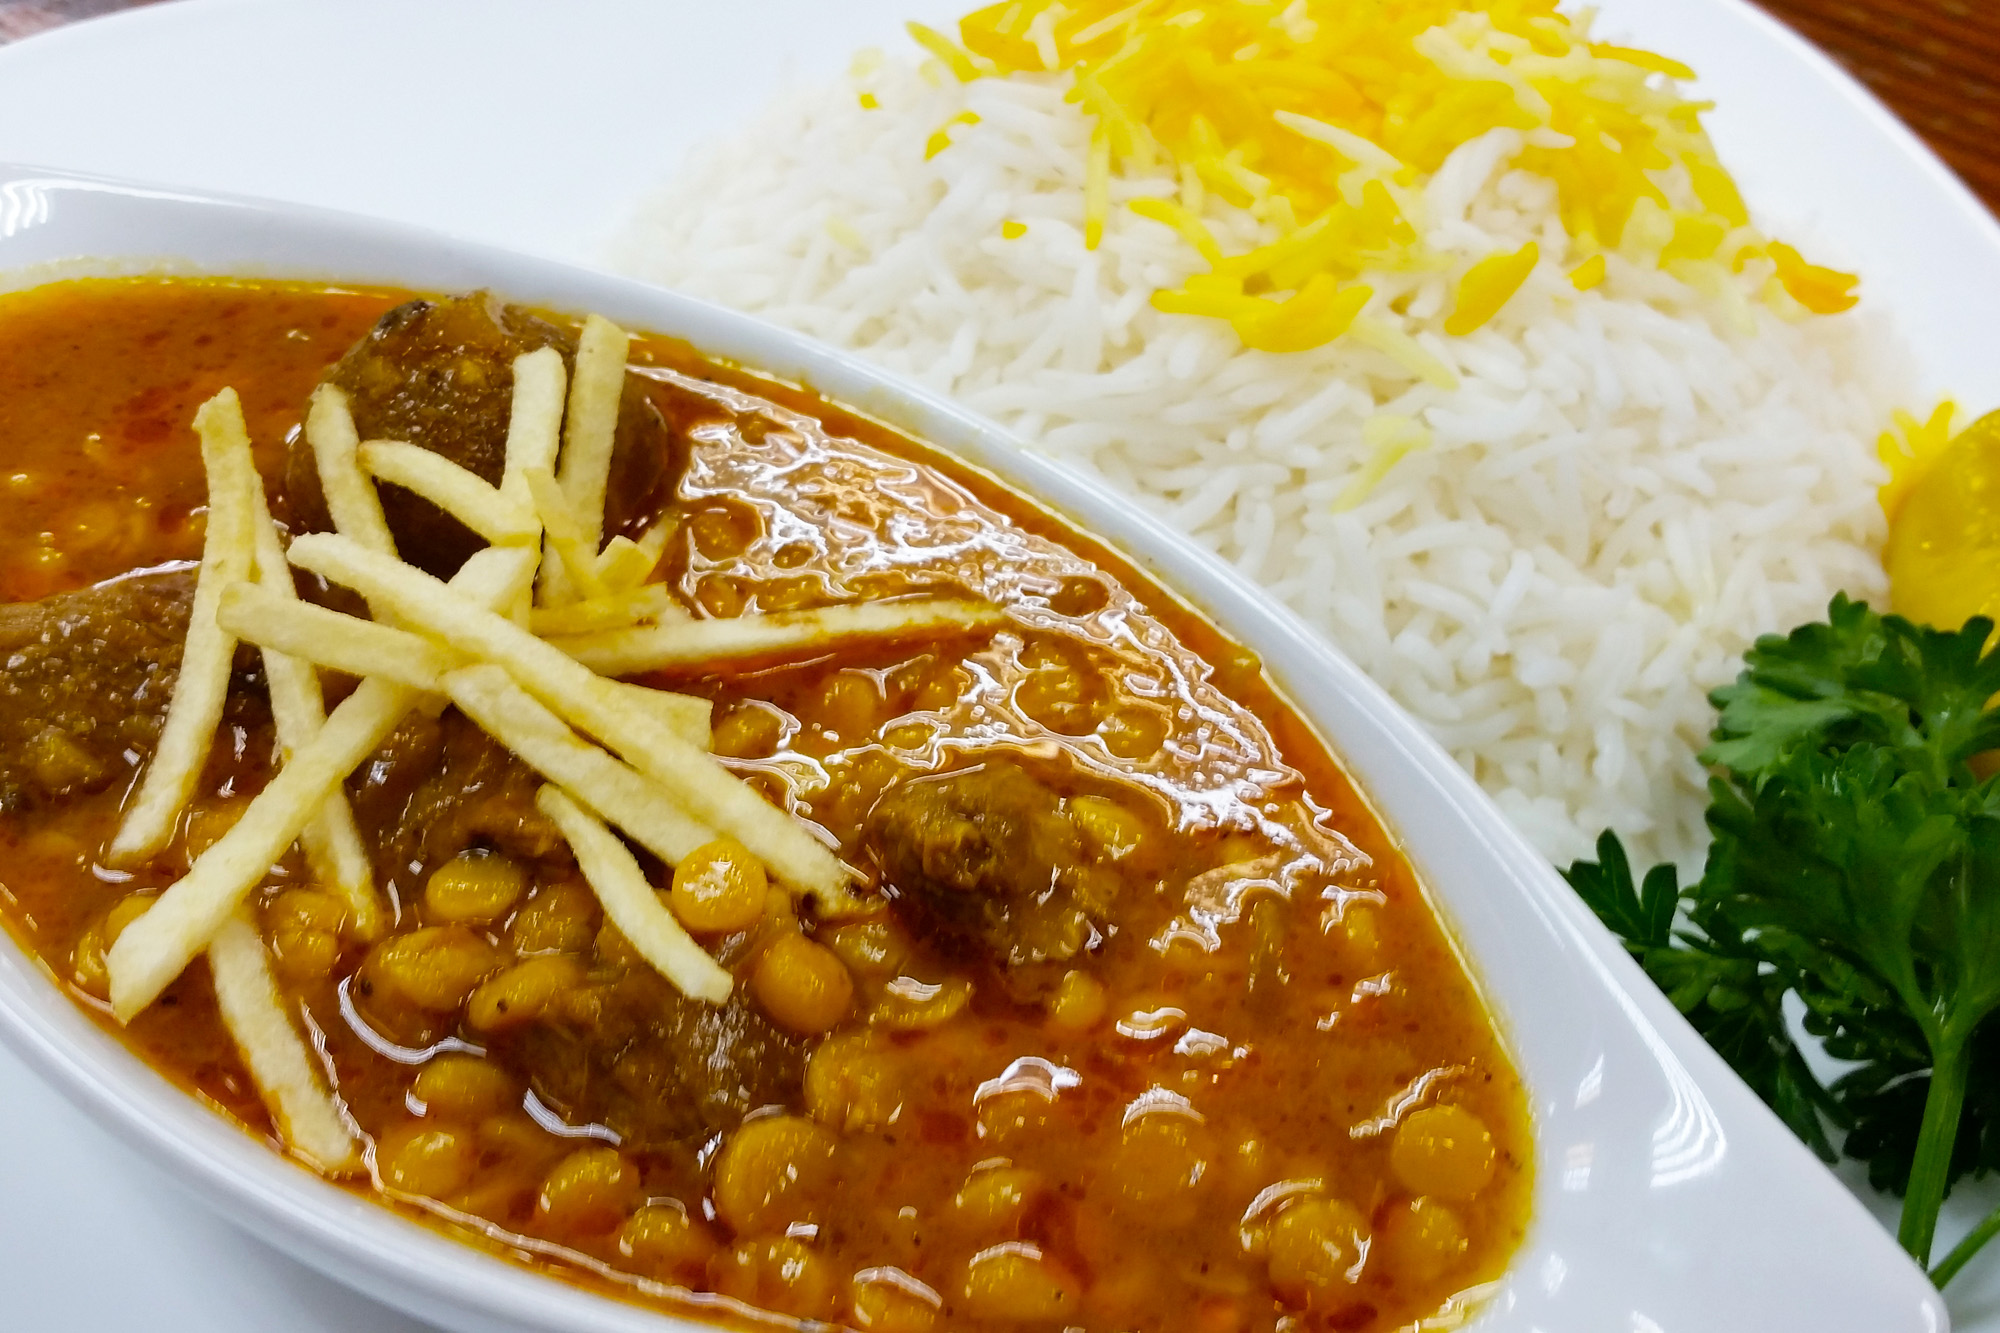 Gheymeh ~ Yellow lentils stewed in tomato with beef and herbs and dried lemon at Sahel Persian Restaurant